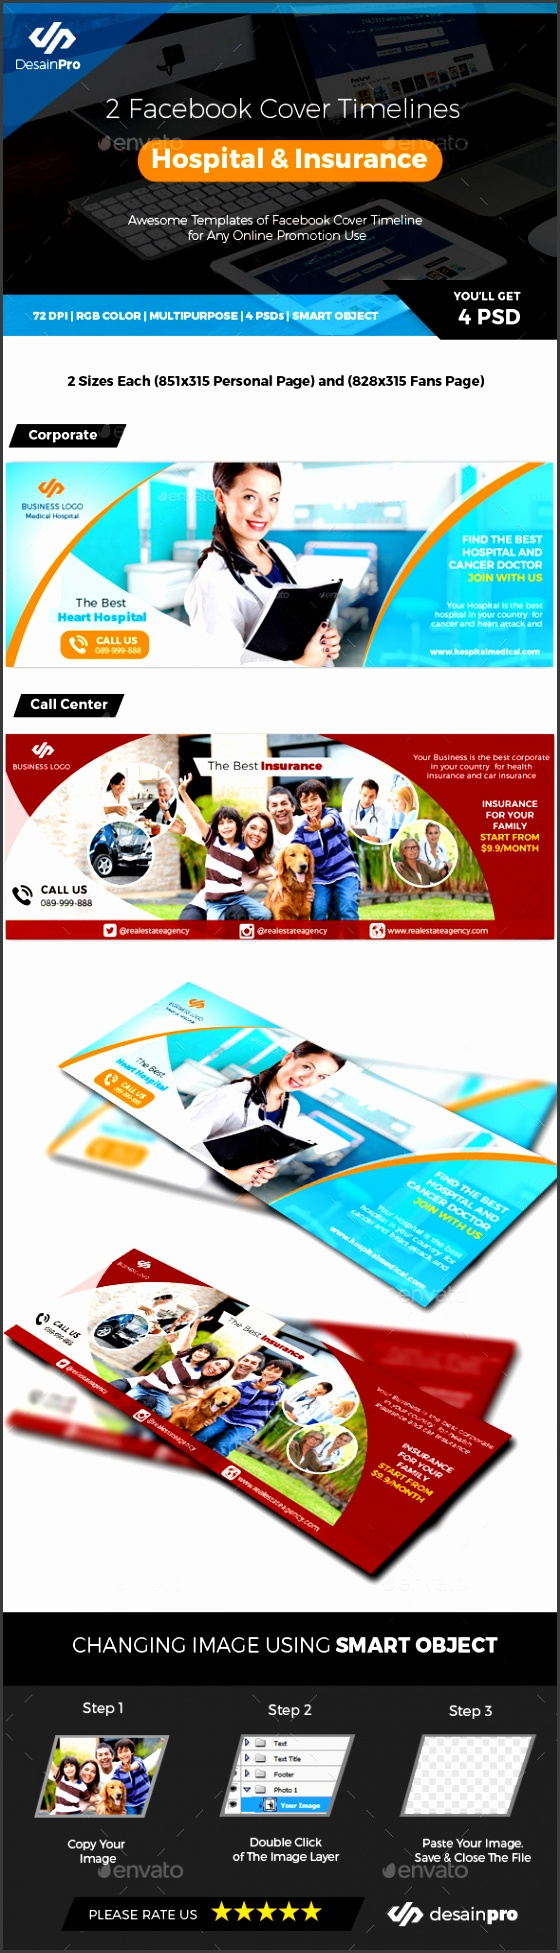 2 Cover Hospital Doctor and Insurance Medical Timeline Covers Social Media